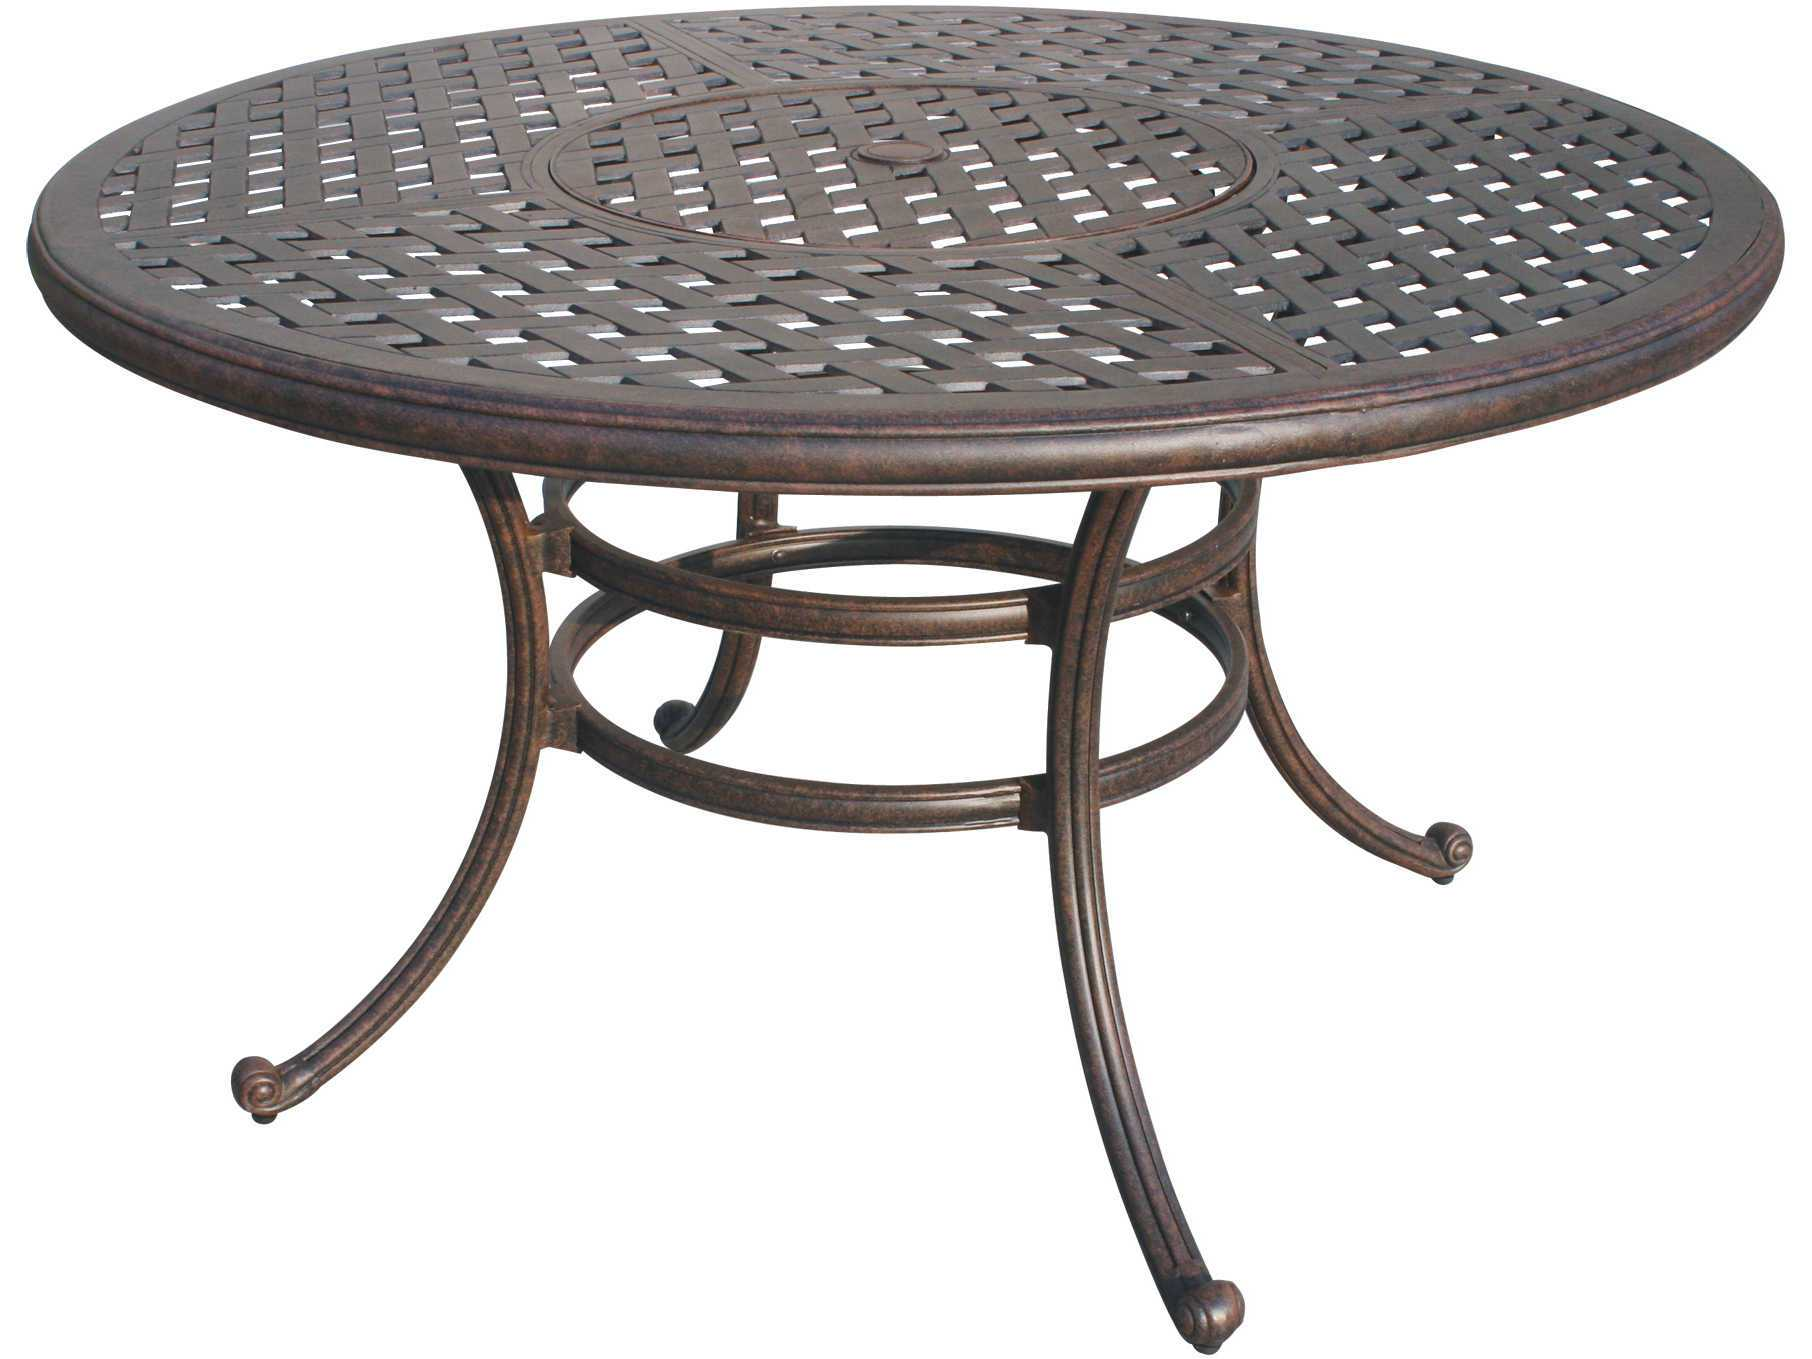 aluminum antique bronze 52 round dining table with ice bucket